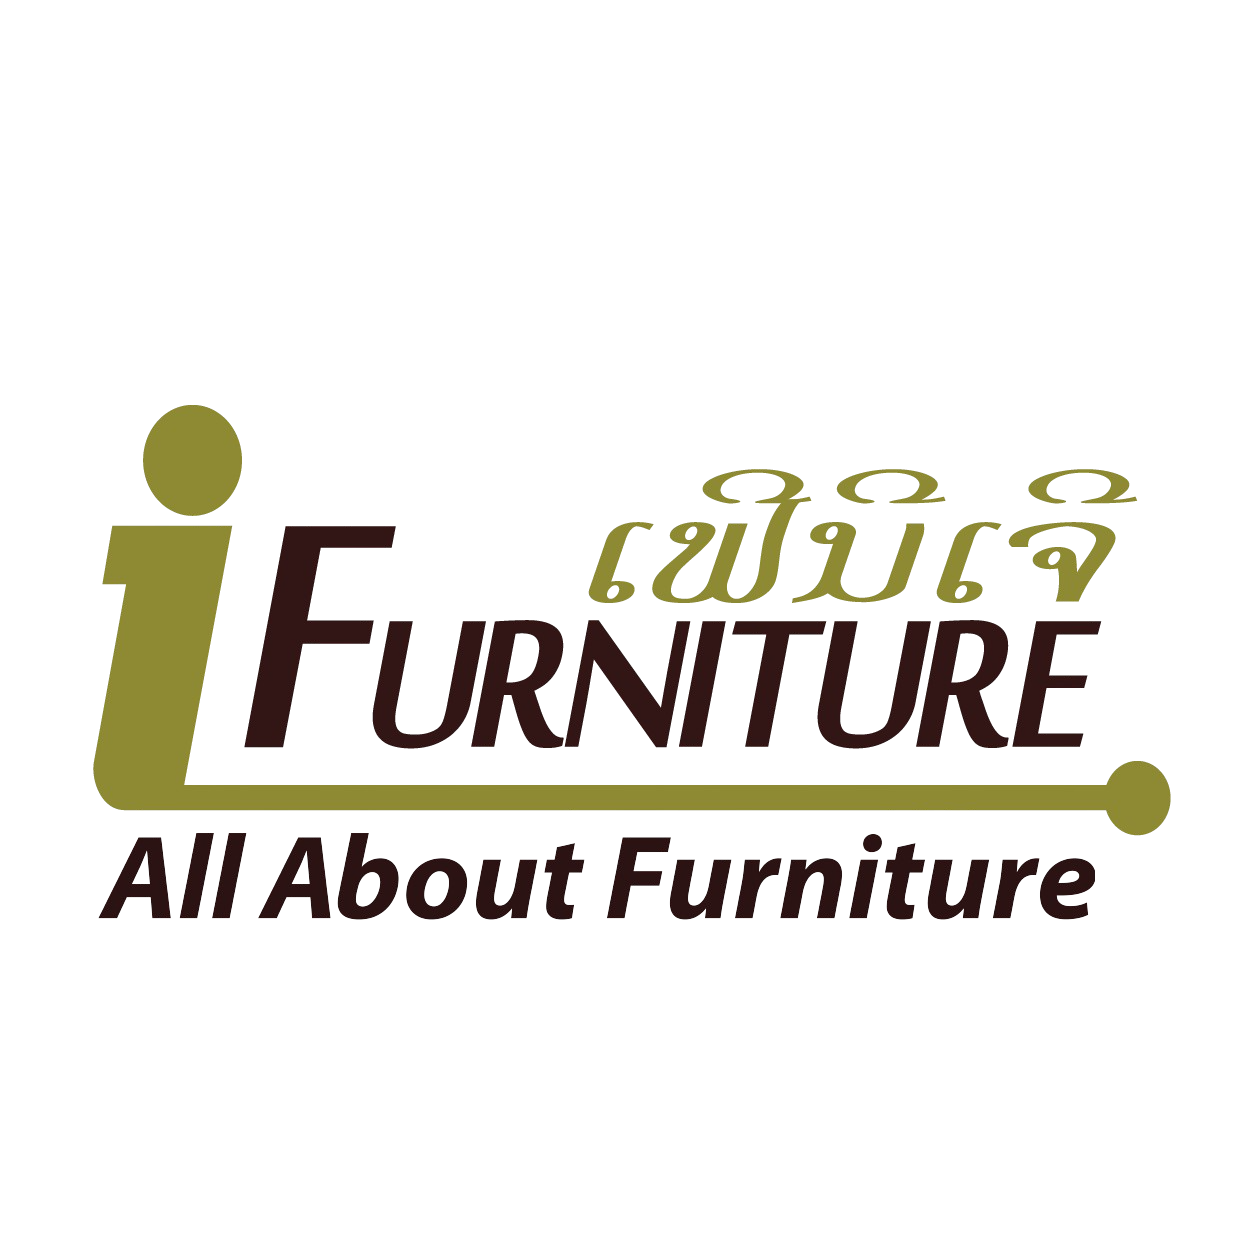 ifurniturelao-logo